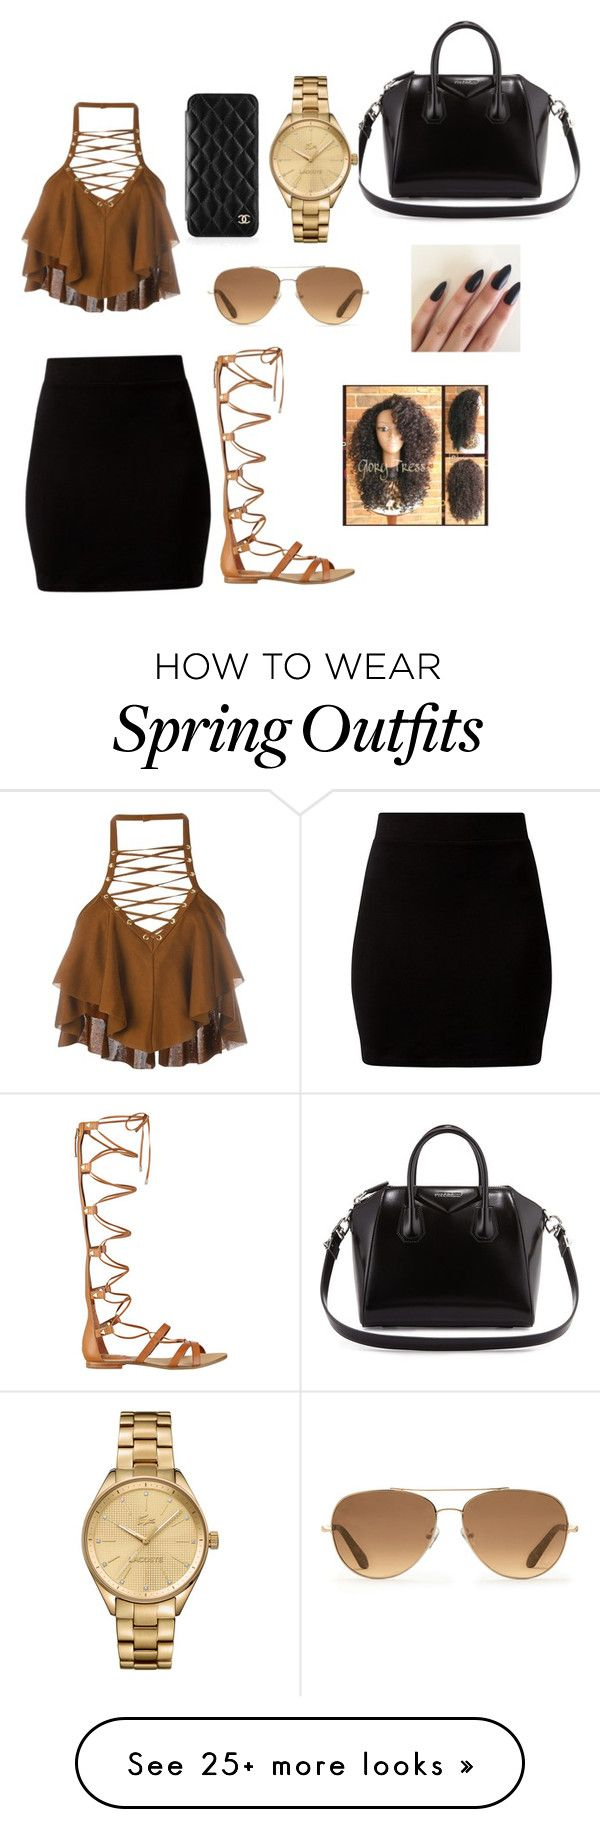 """My new 2016 shopping outfit "" by fashion-is-my-everything on Polyvore featuring Balmain, GUESS, Givenchy, Stella & Dot, Lacoste and Chanel"